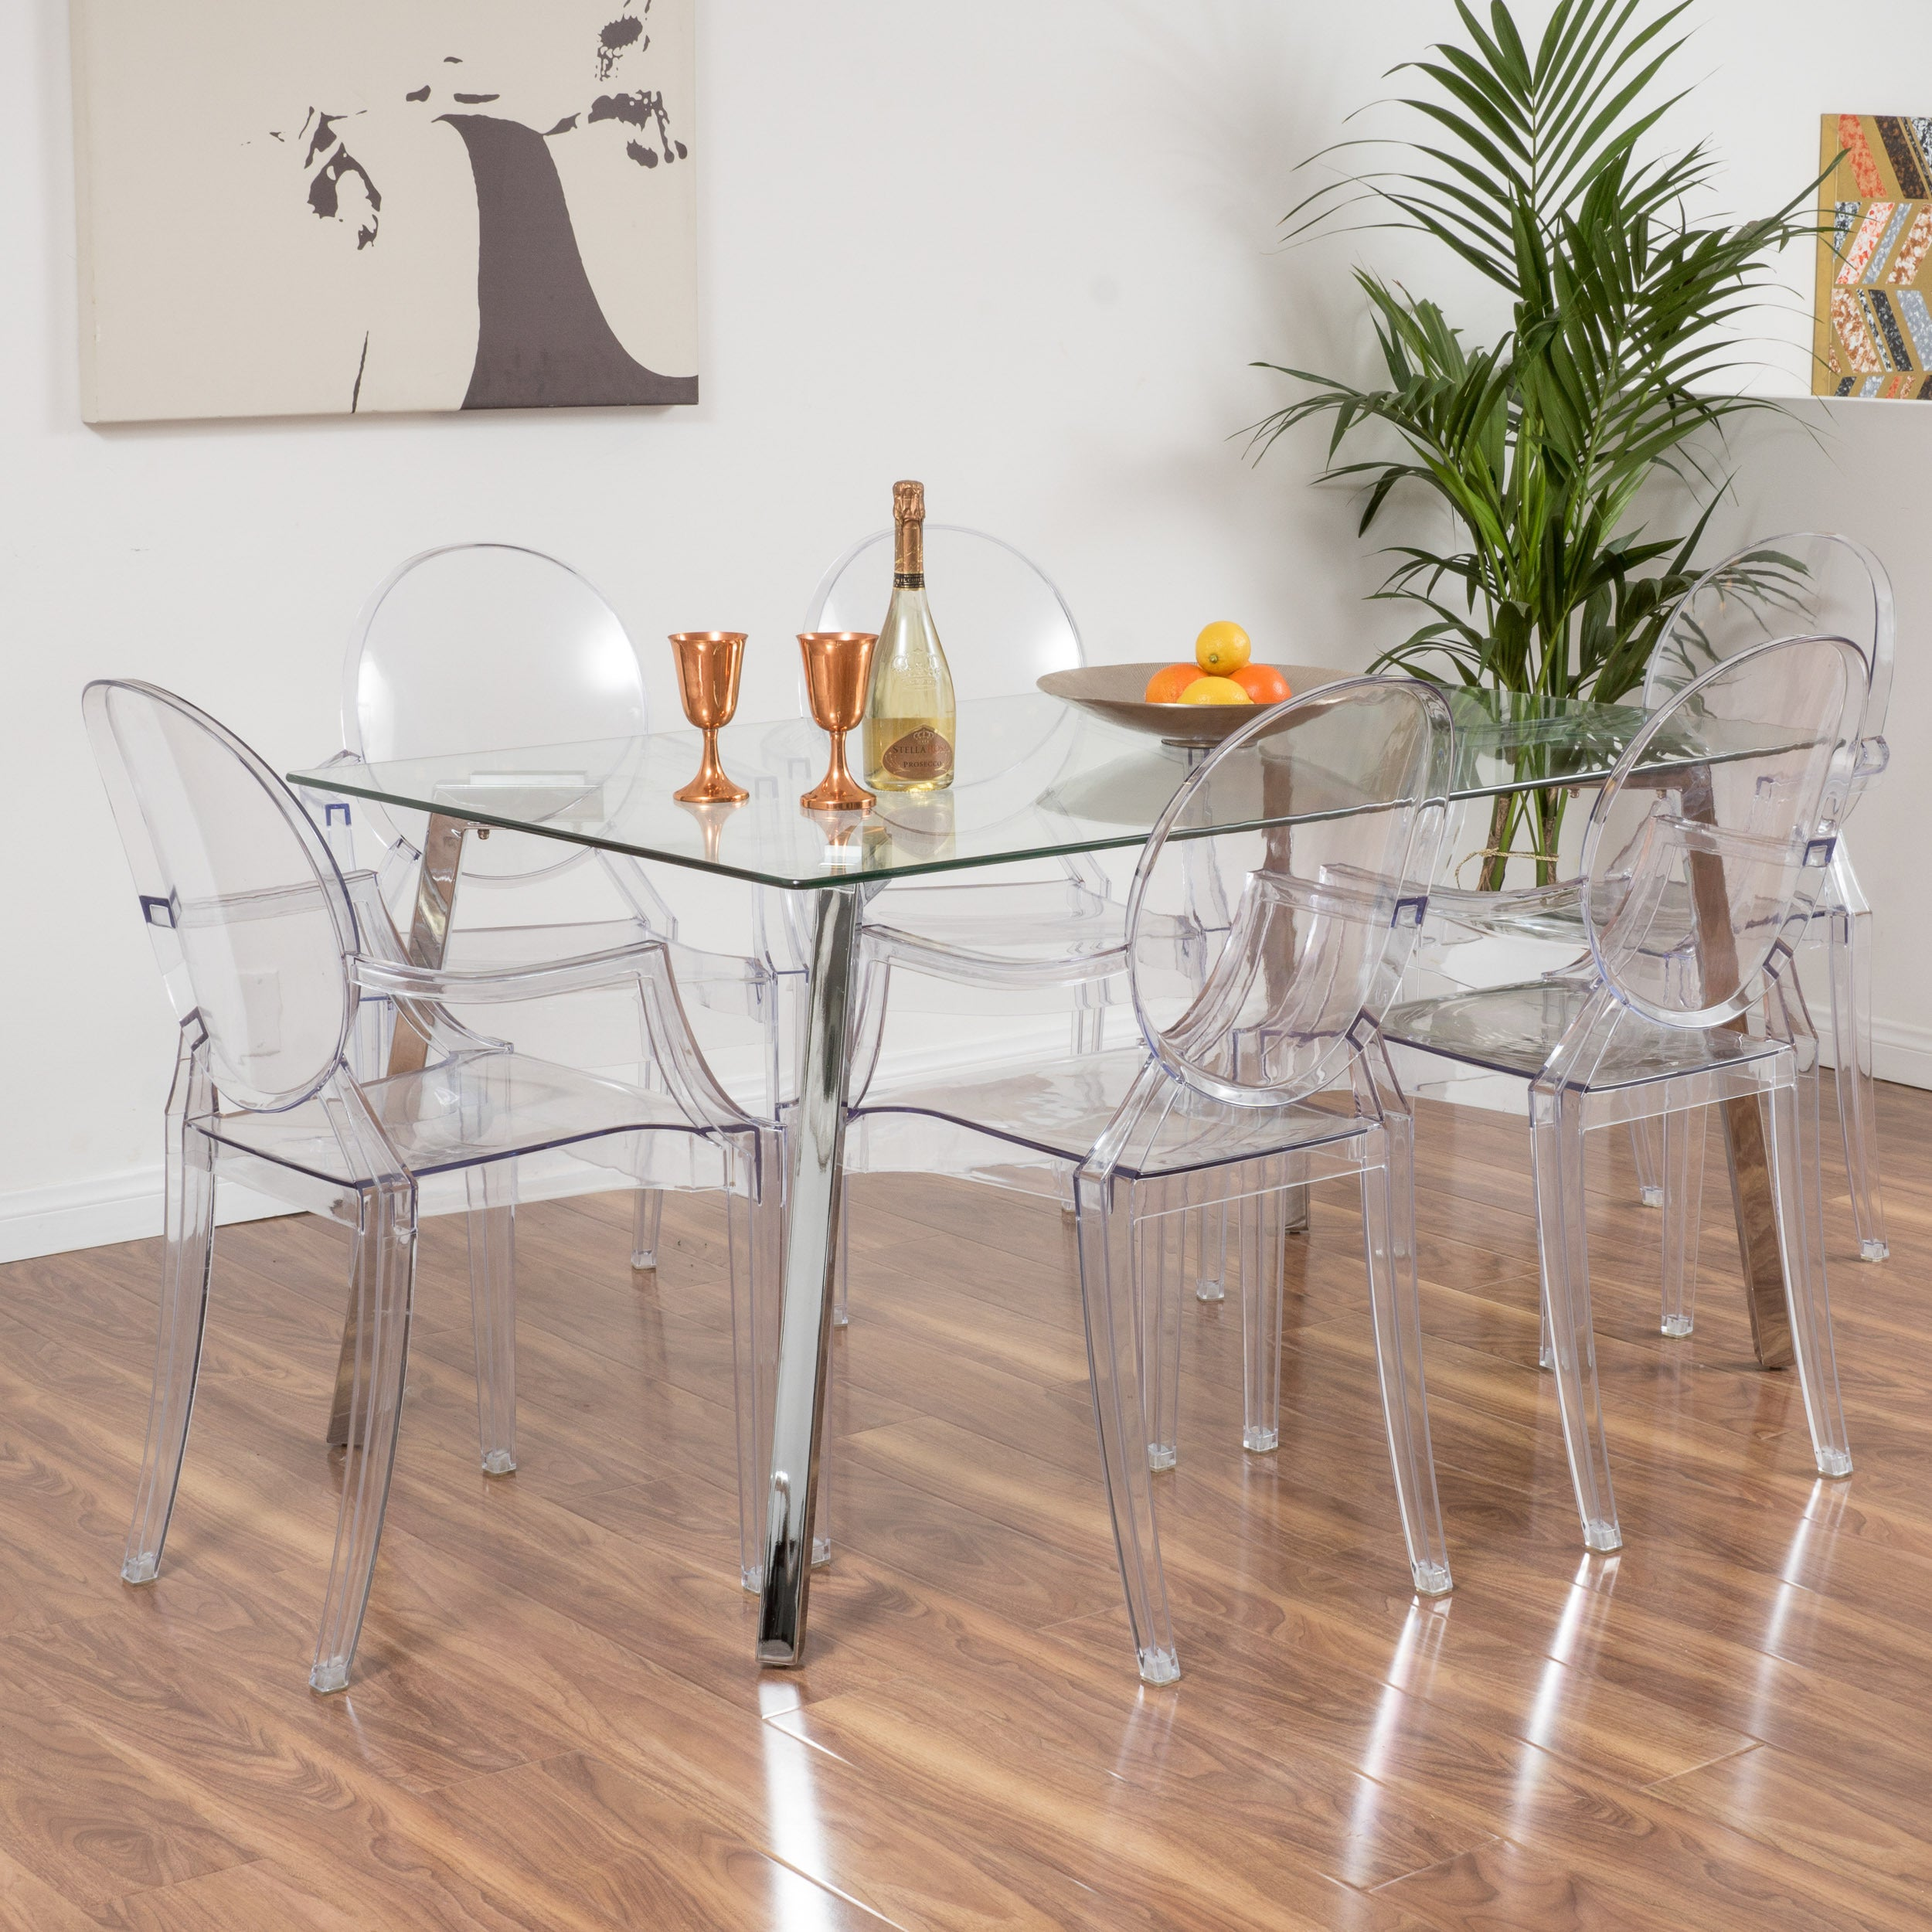 Sabatay tempered glass rectangle dining table only by christopher sabatay tempered glass rectangle dining table only by christopher knight home free shipping today overstock 18107017 watchthetrailerfo